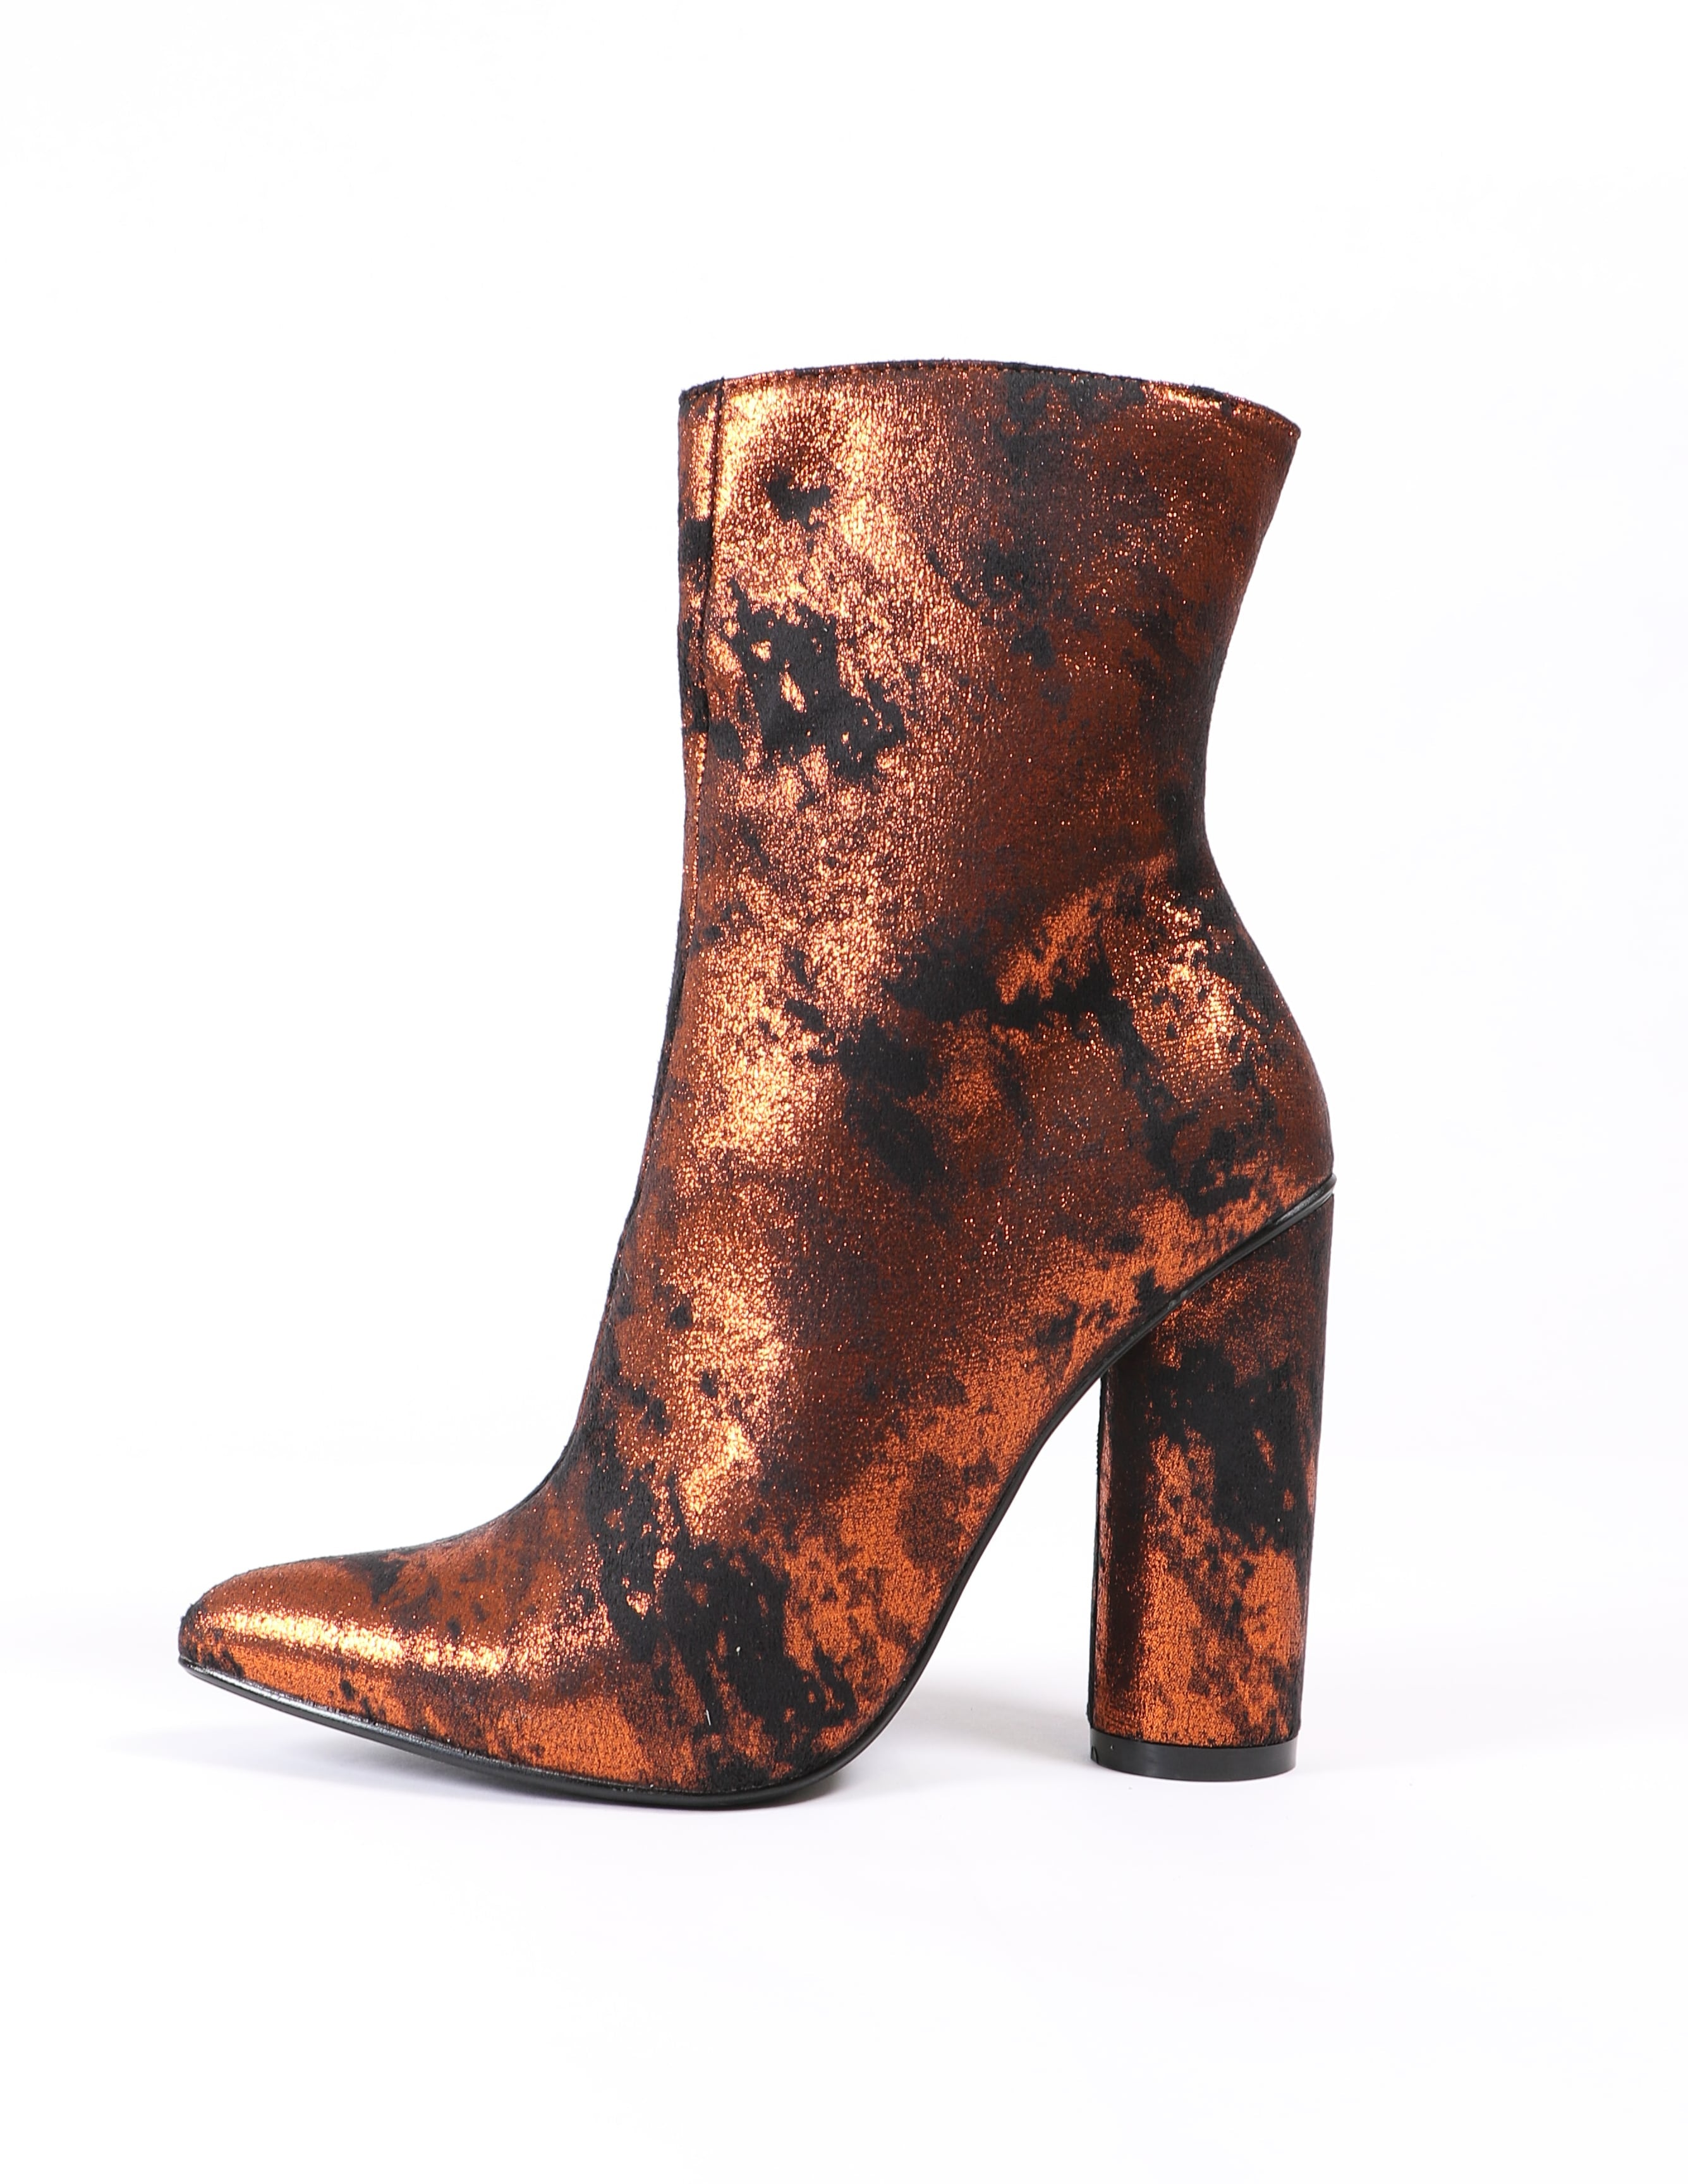 Rust colored metallic fitted ankle boots - elle bleu shoes